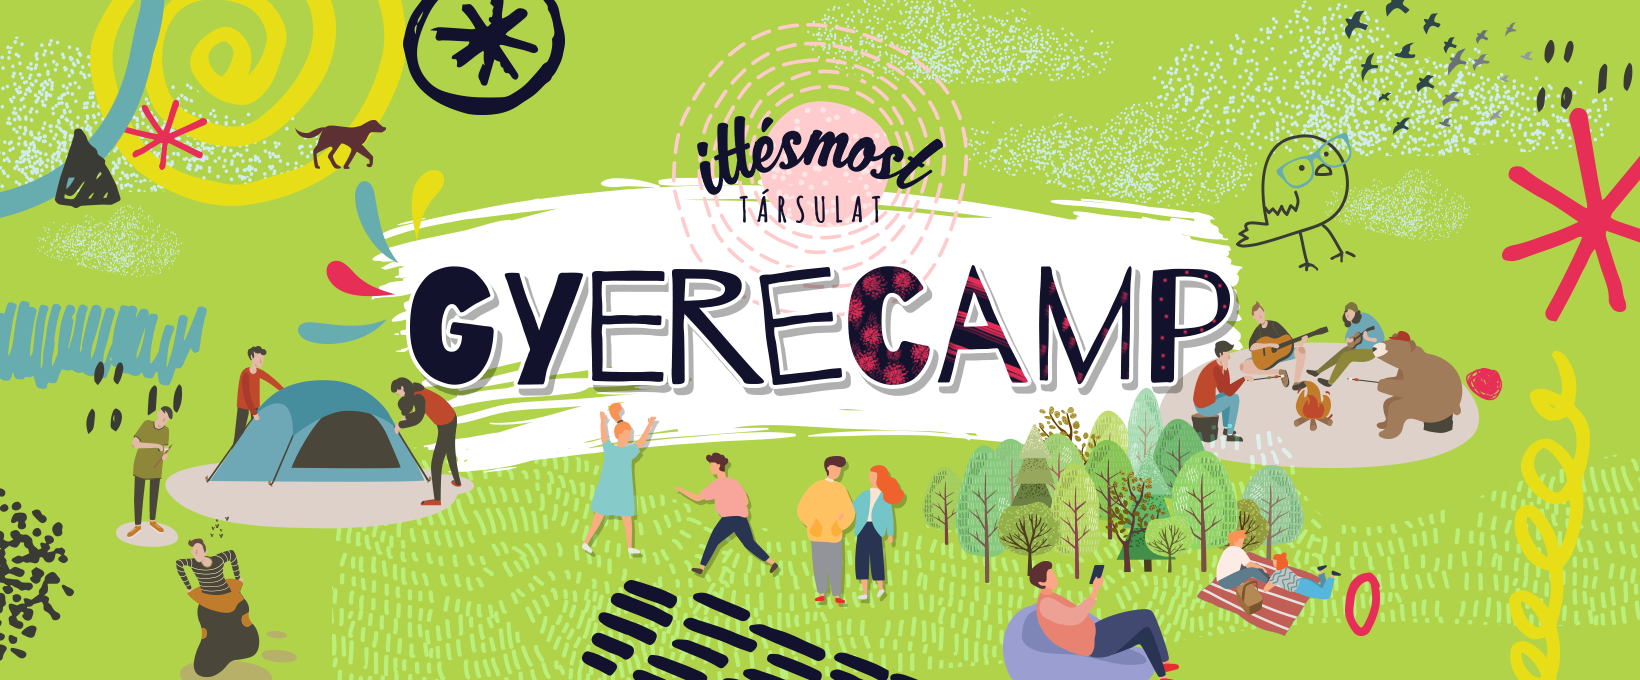 ittesmost-gyerecamp-preview2